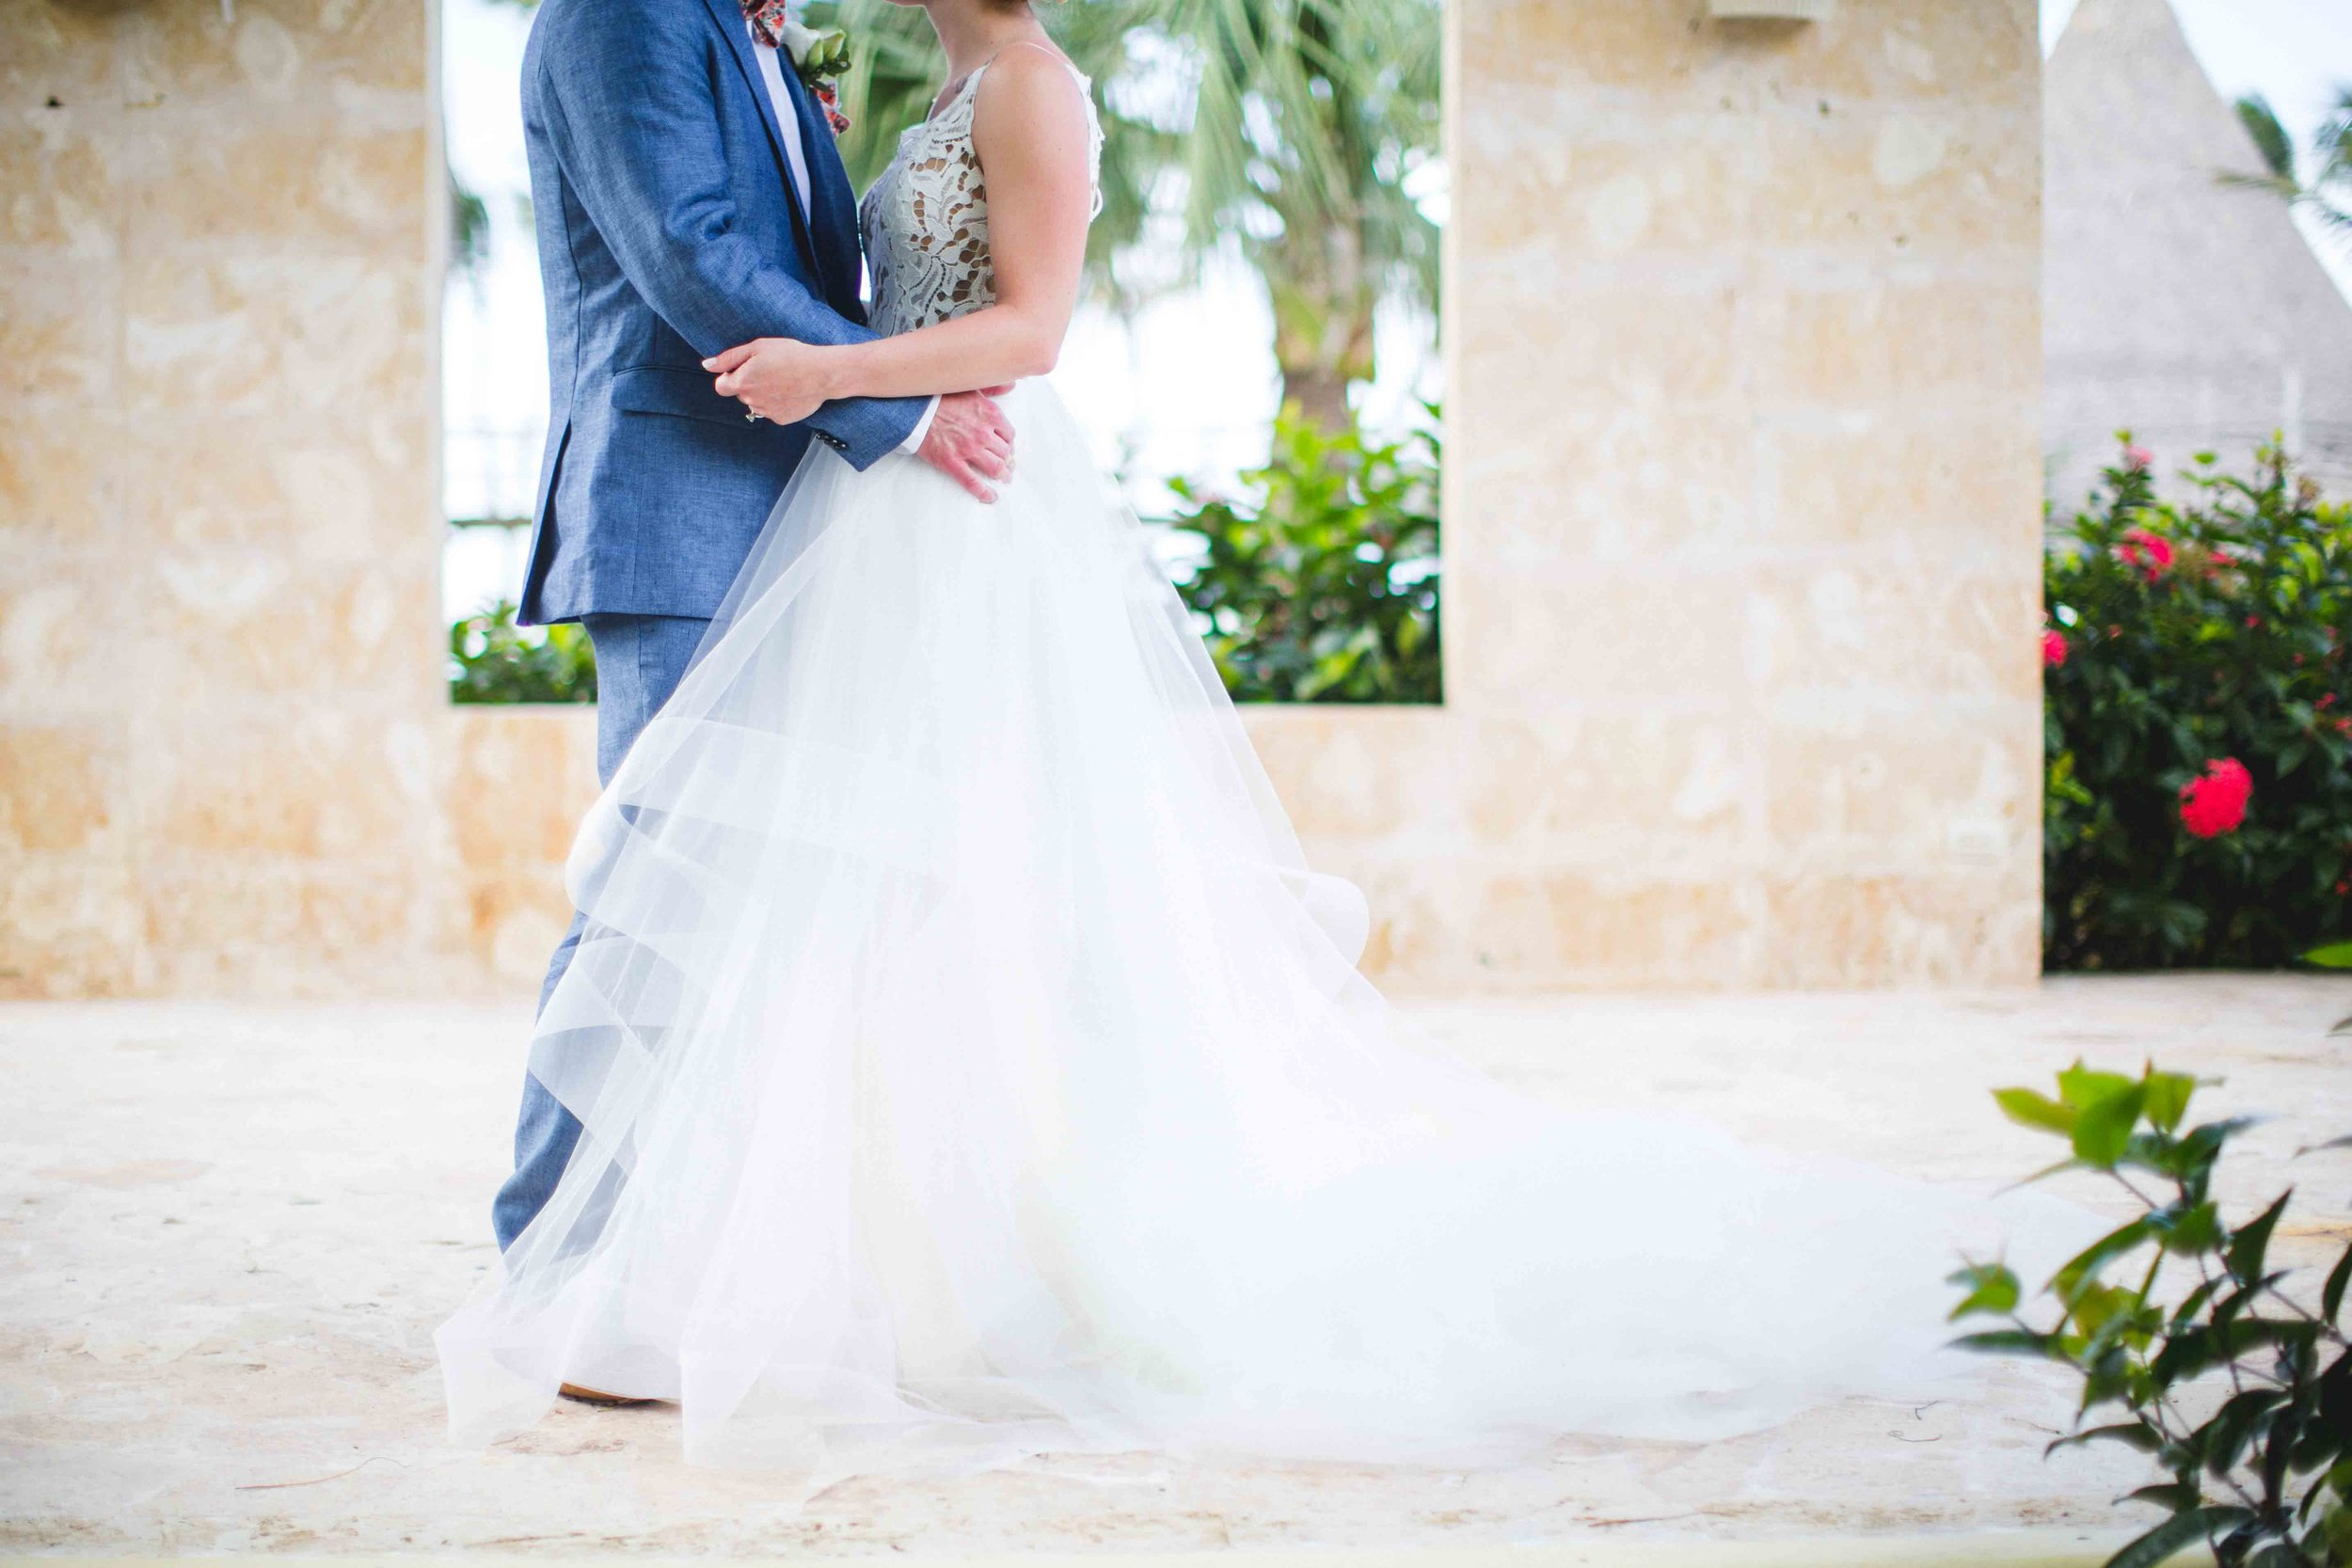 punta-cana-dominican-republic-wedding-photographer-55.jpg